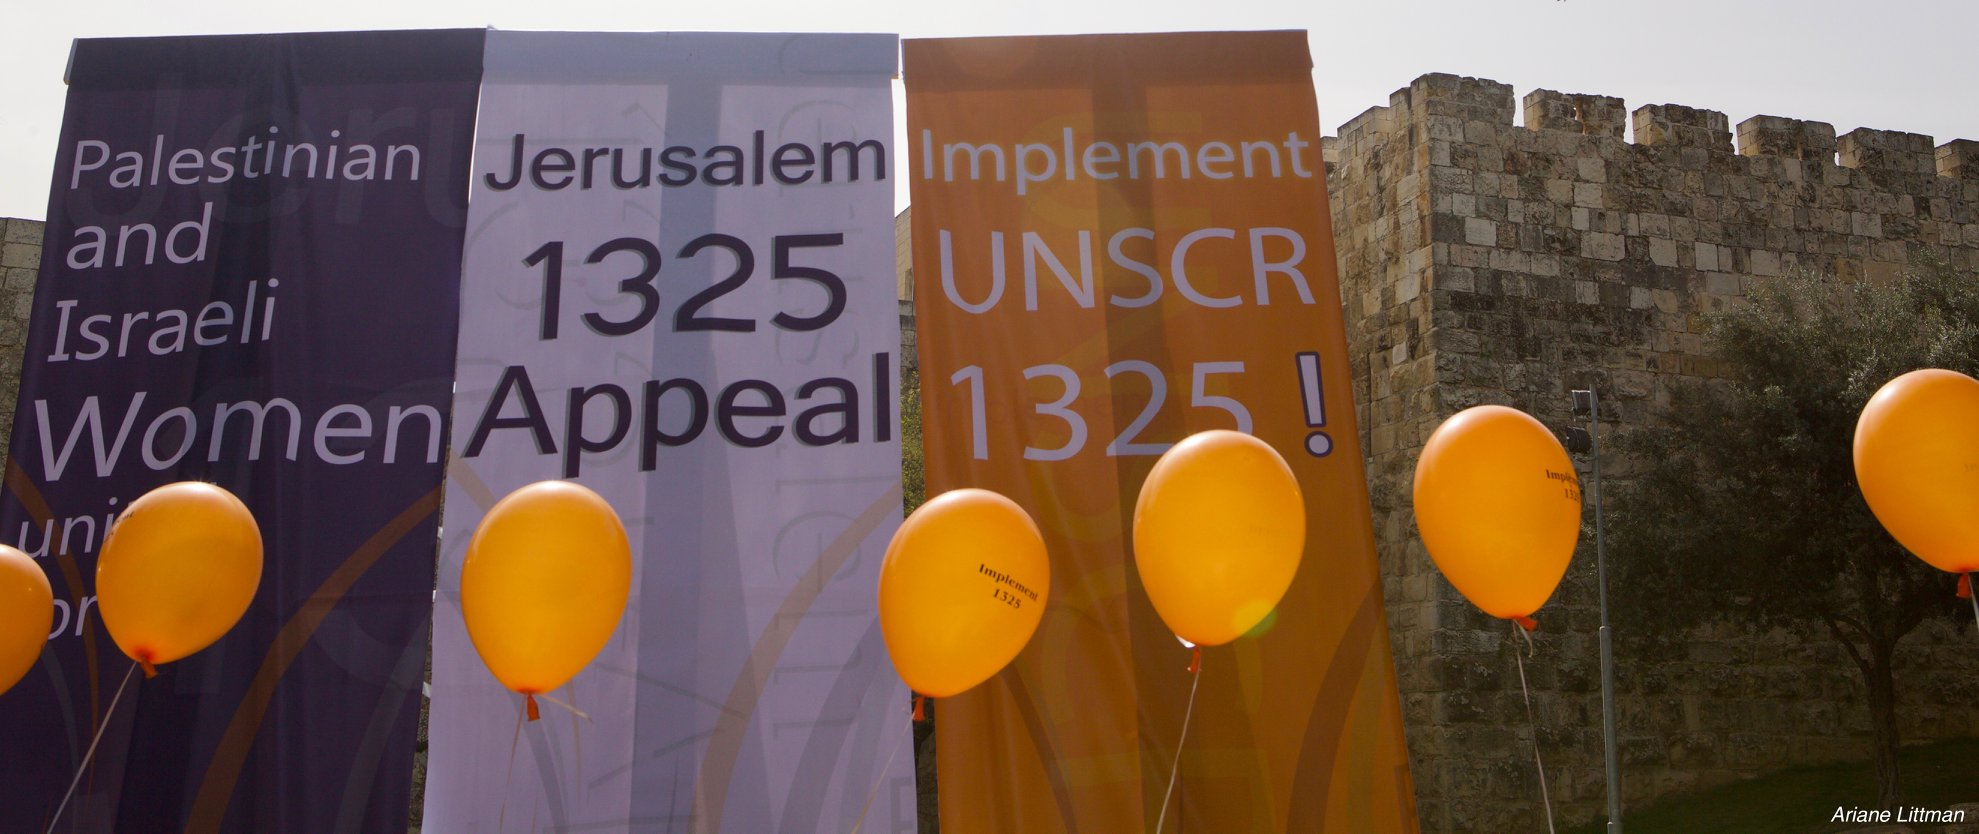 1325 appeal by nablus gate arianne littman